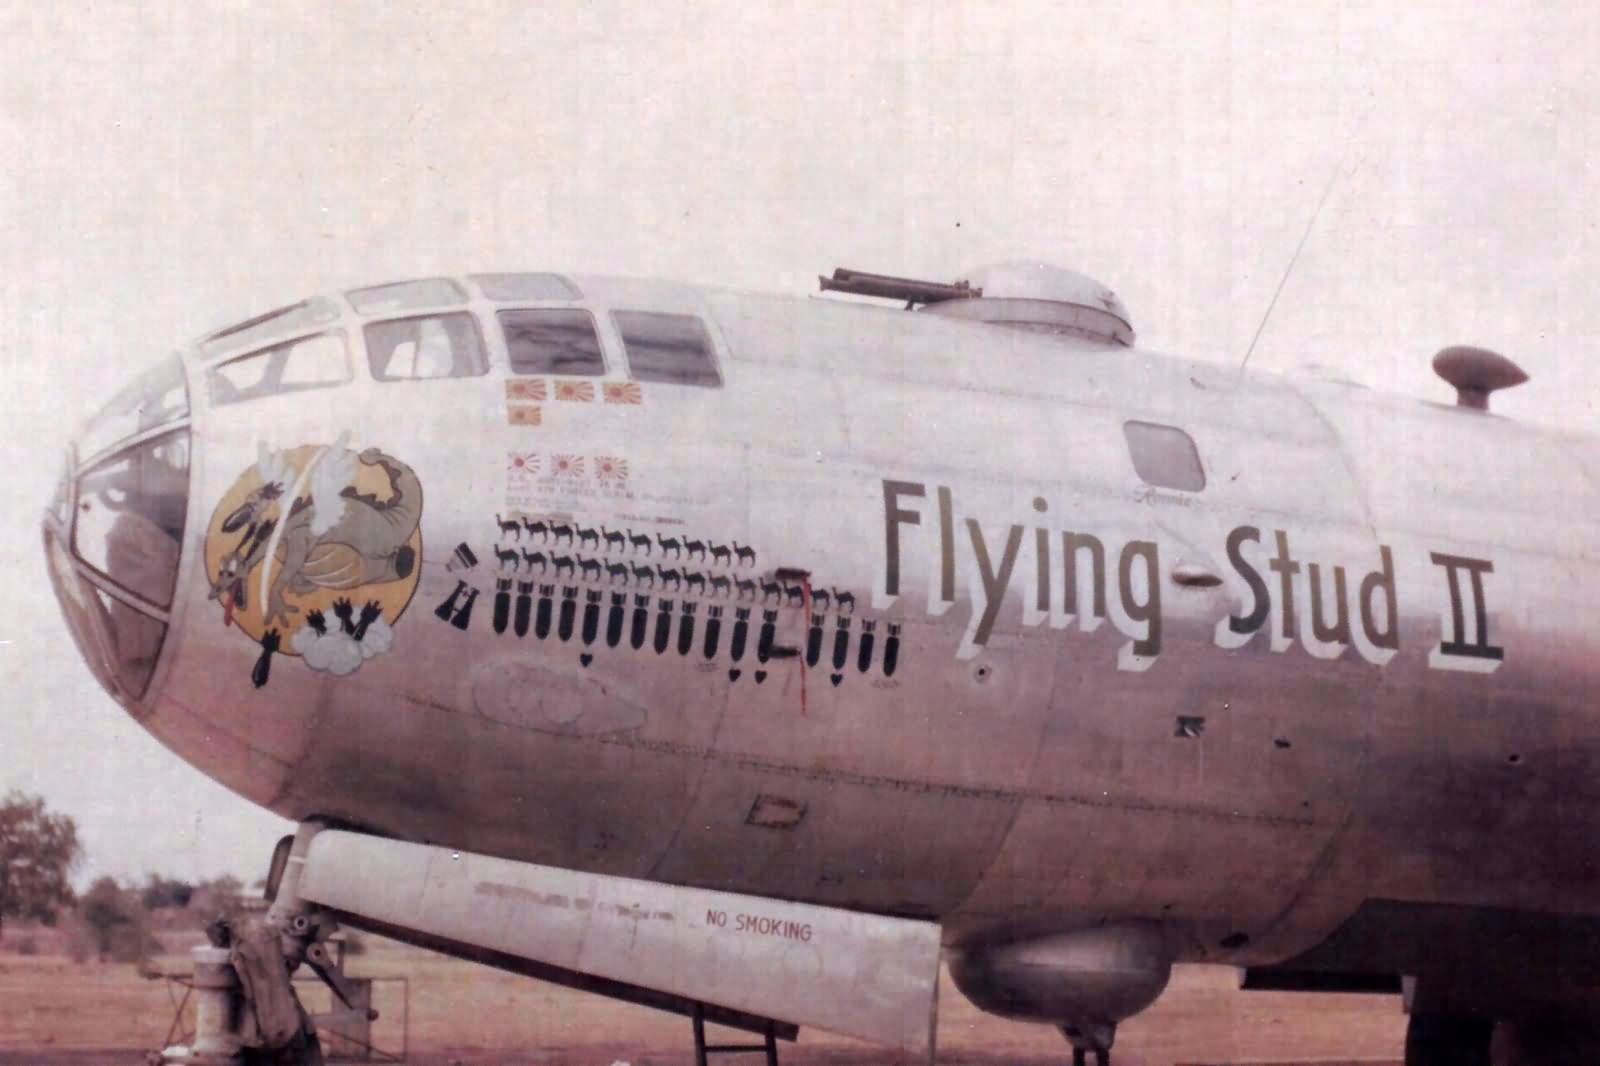 B-29 Superfortress 444th BG, 677th BS Flying Stud II nose Art 42-24464 China 1944